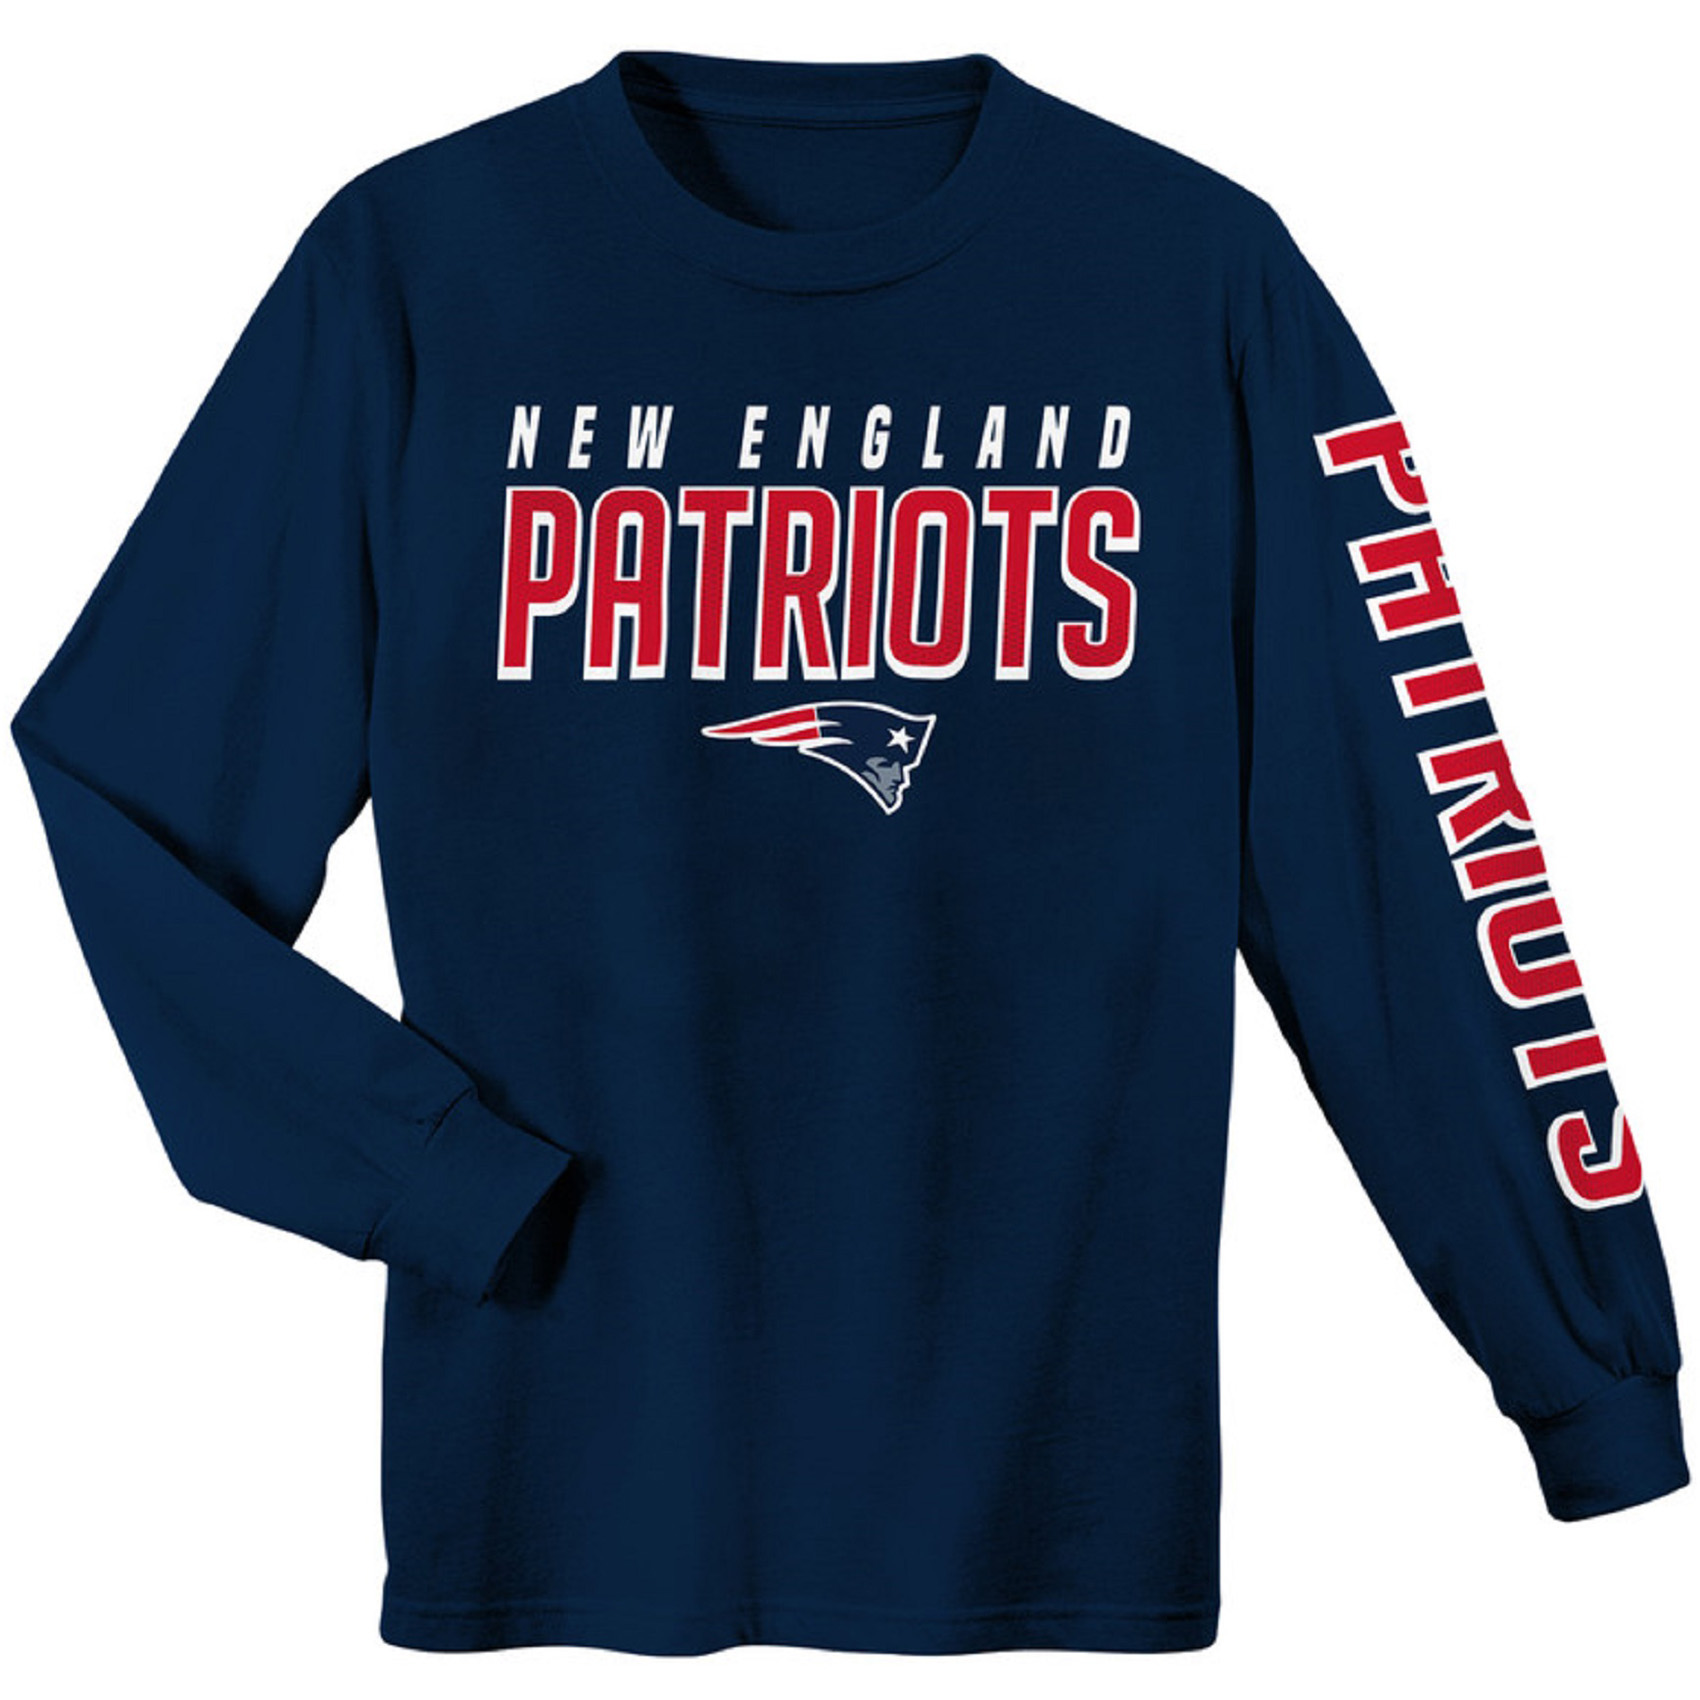 2032dfc2 New England Patriots Team Shop - Walmart.com